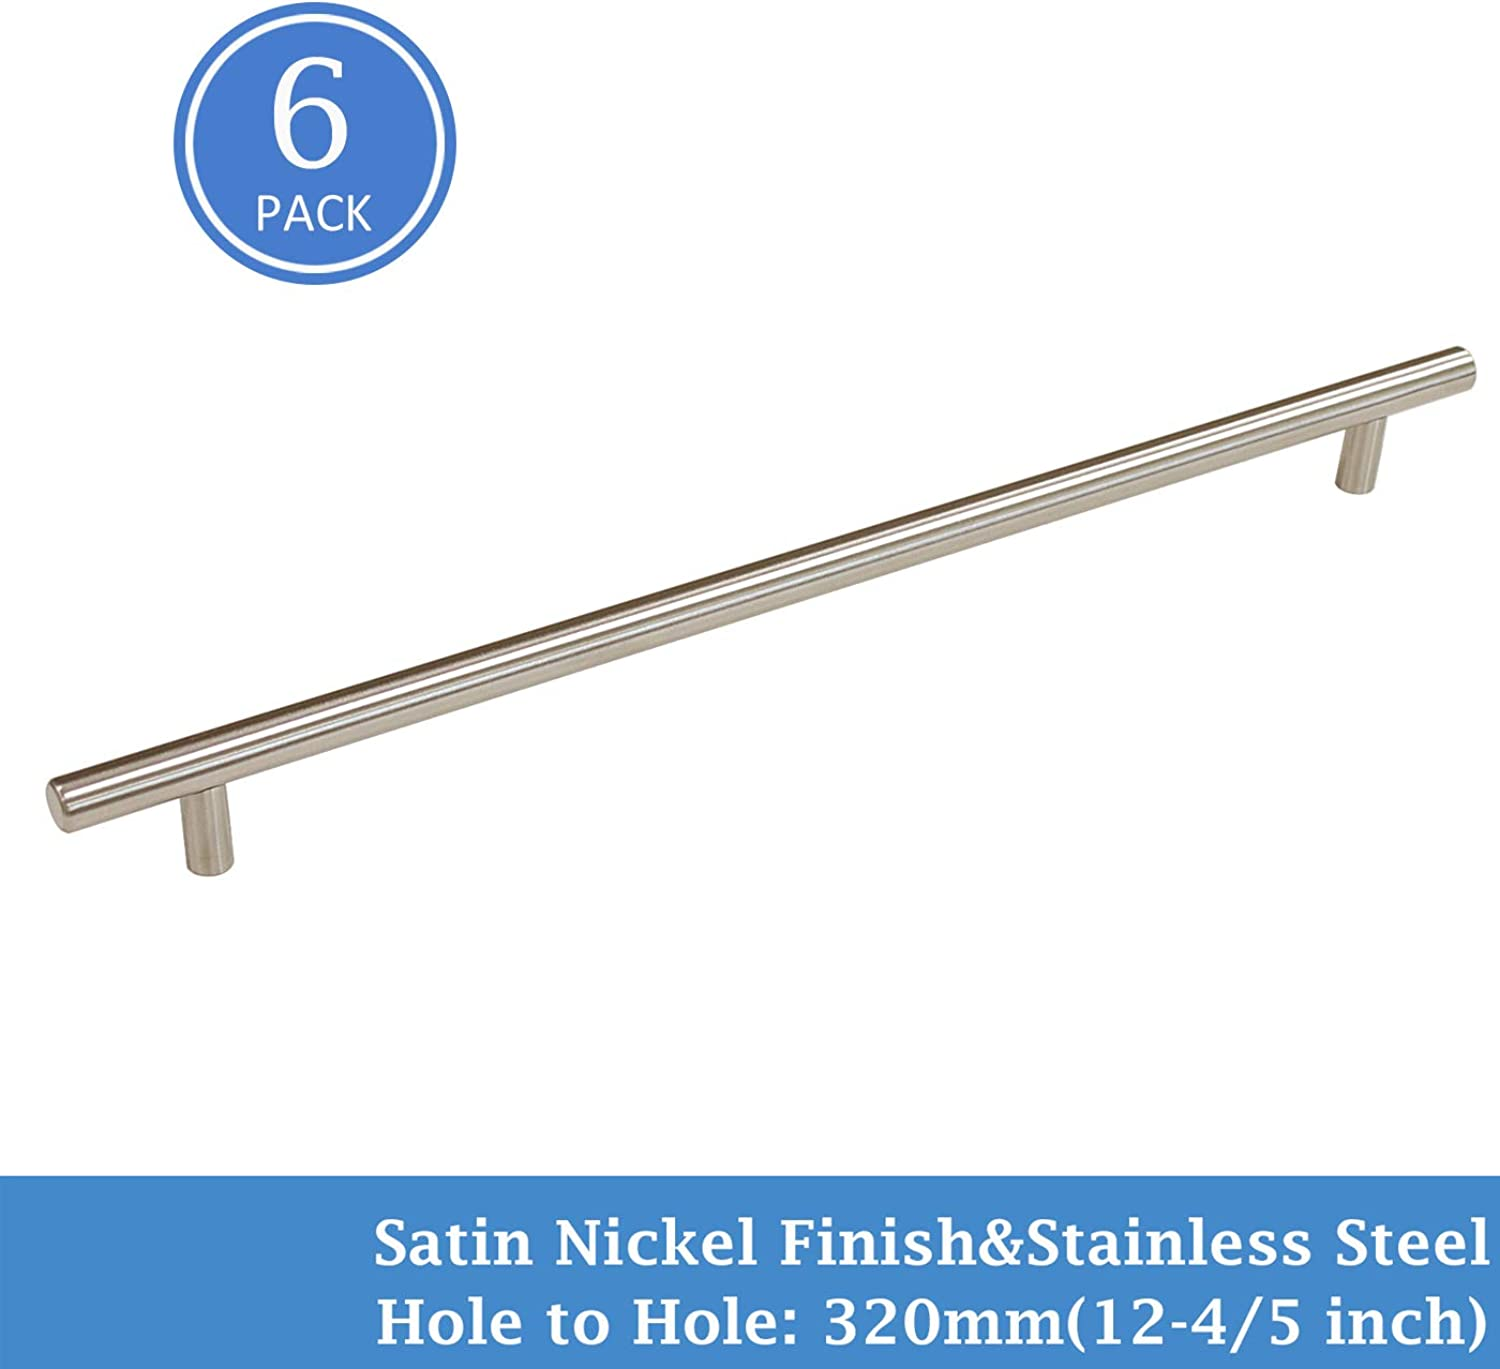 Knobonly 6 Pack 12-4 5  320mm Hole Centers Stainless Steel Kitchen Cabinet Closet Door Handles Brushed Nickel Finish